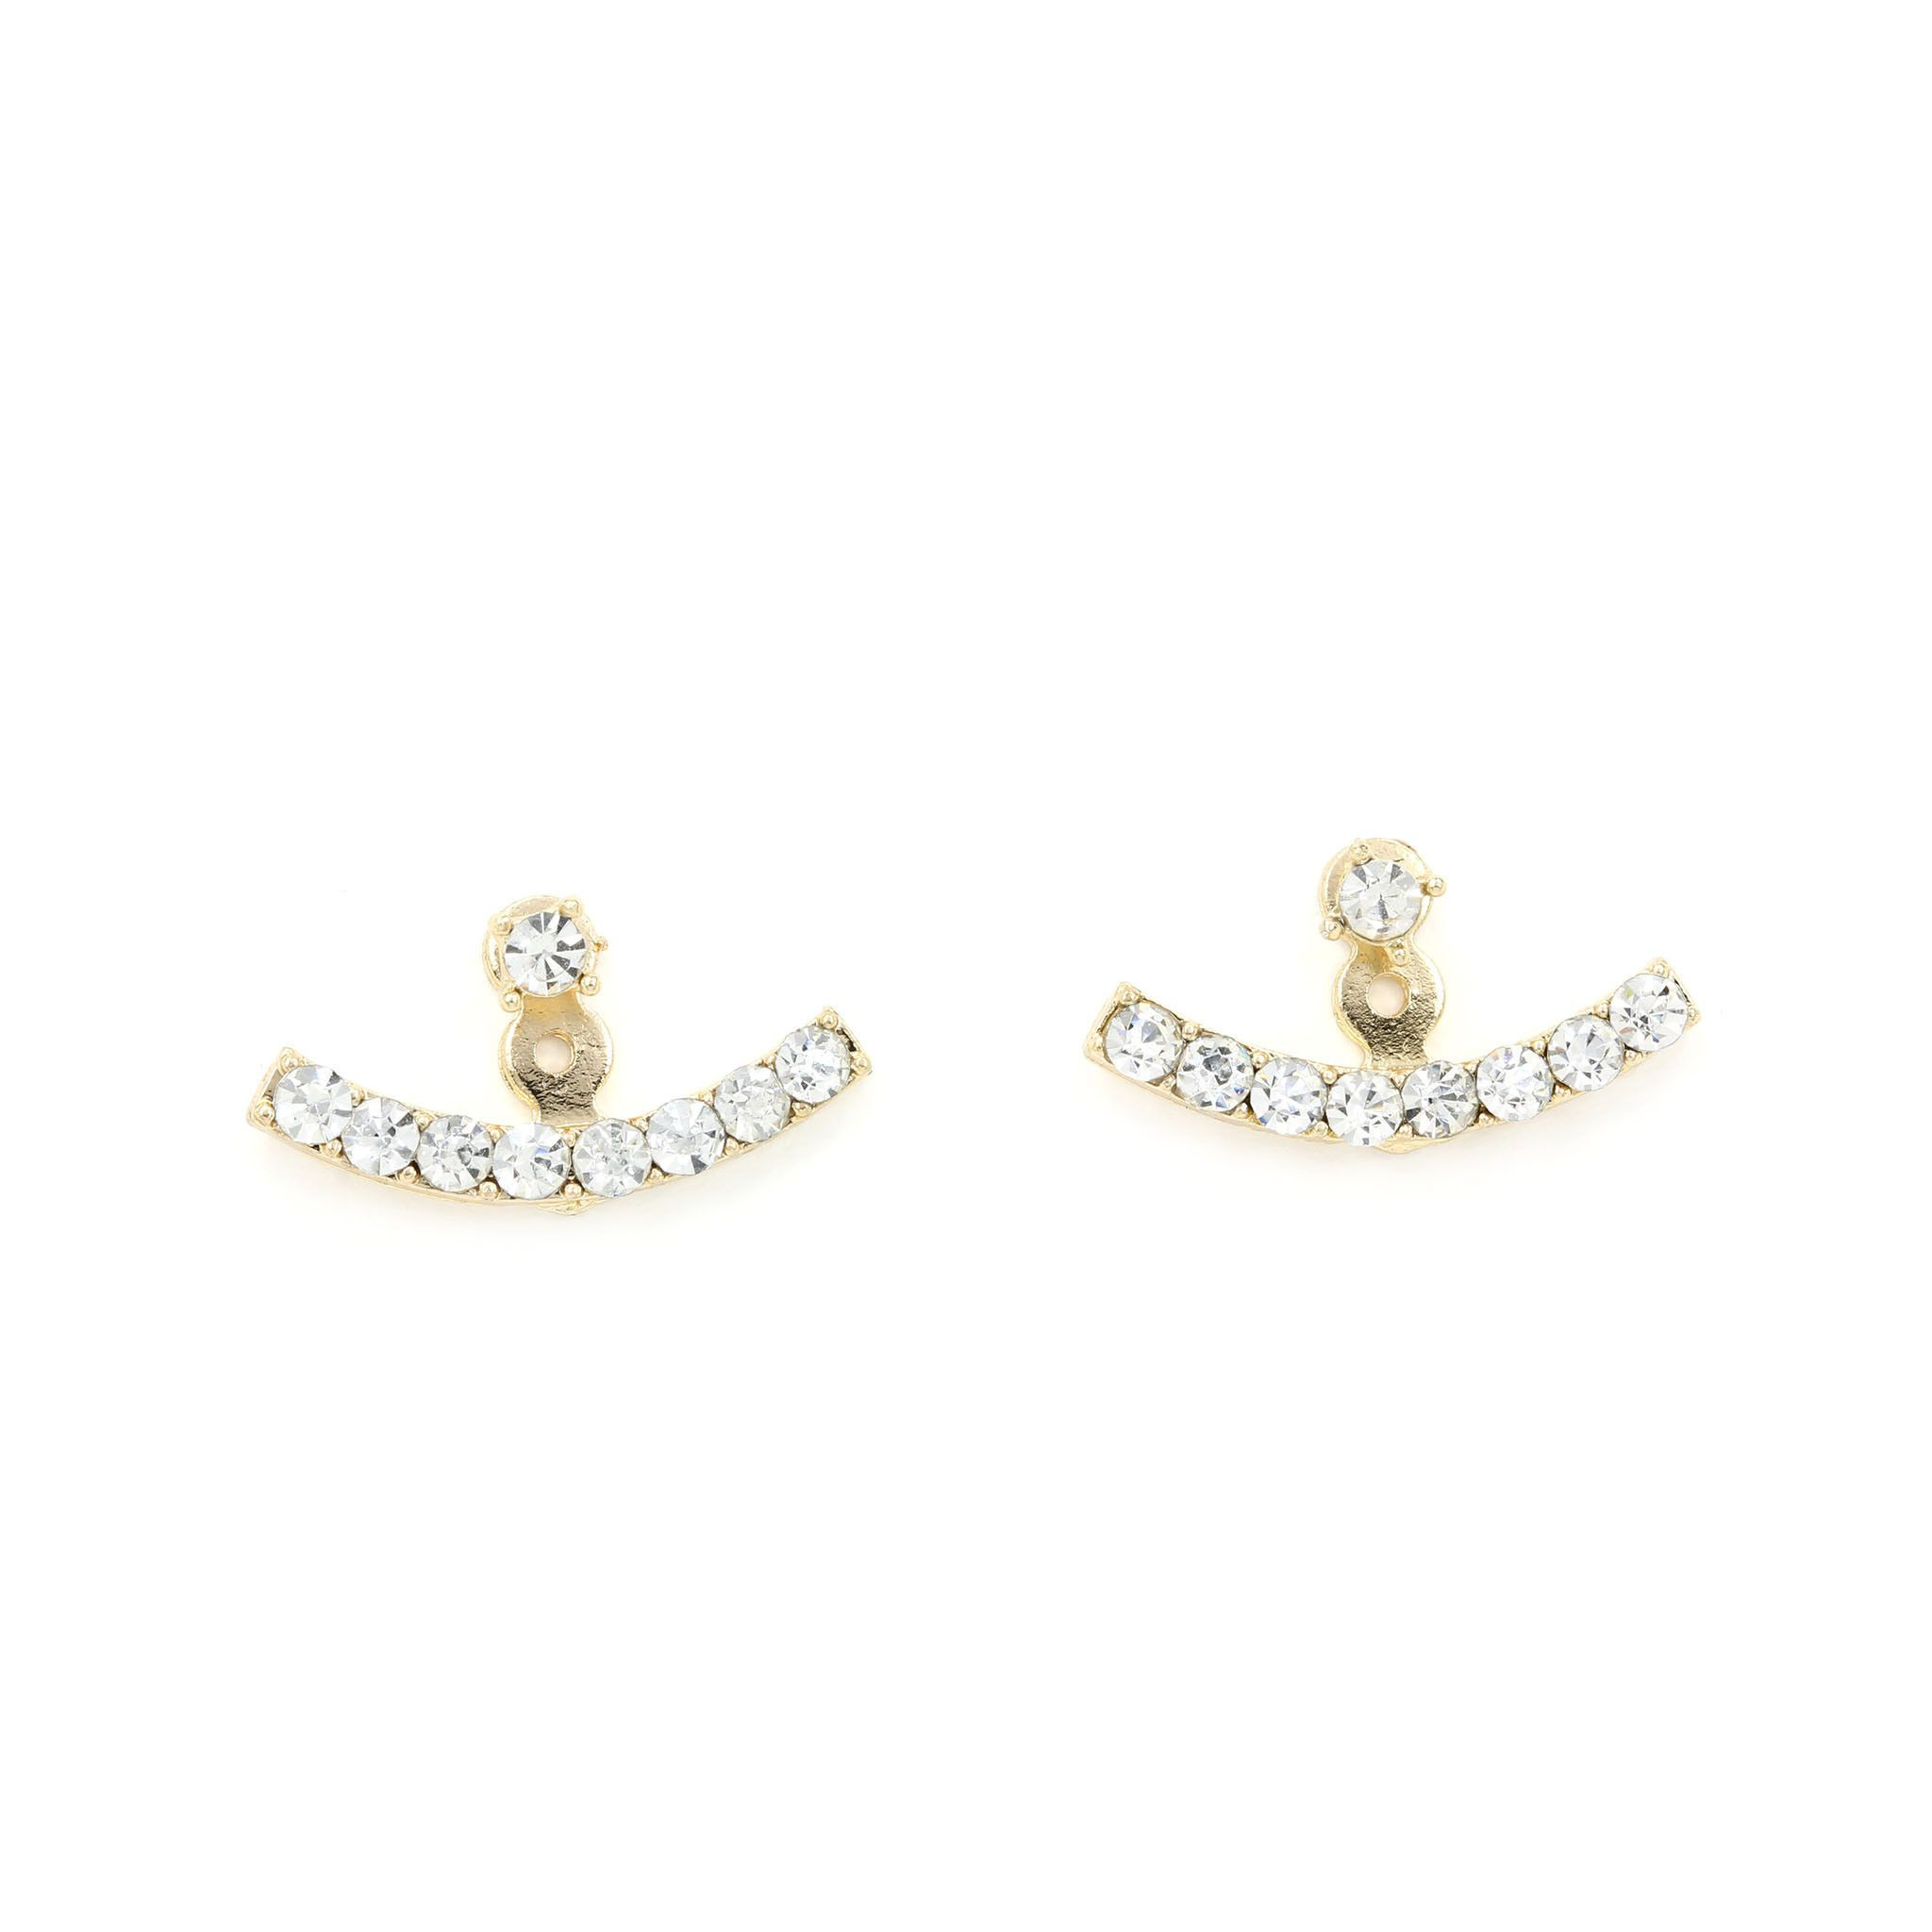 Diamond earrings have been a classic for decades This ear jacket